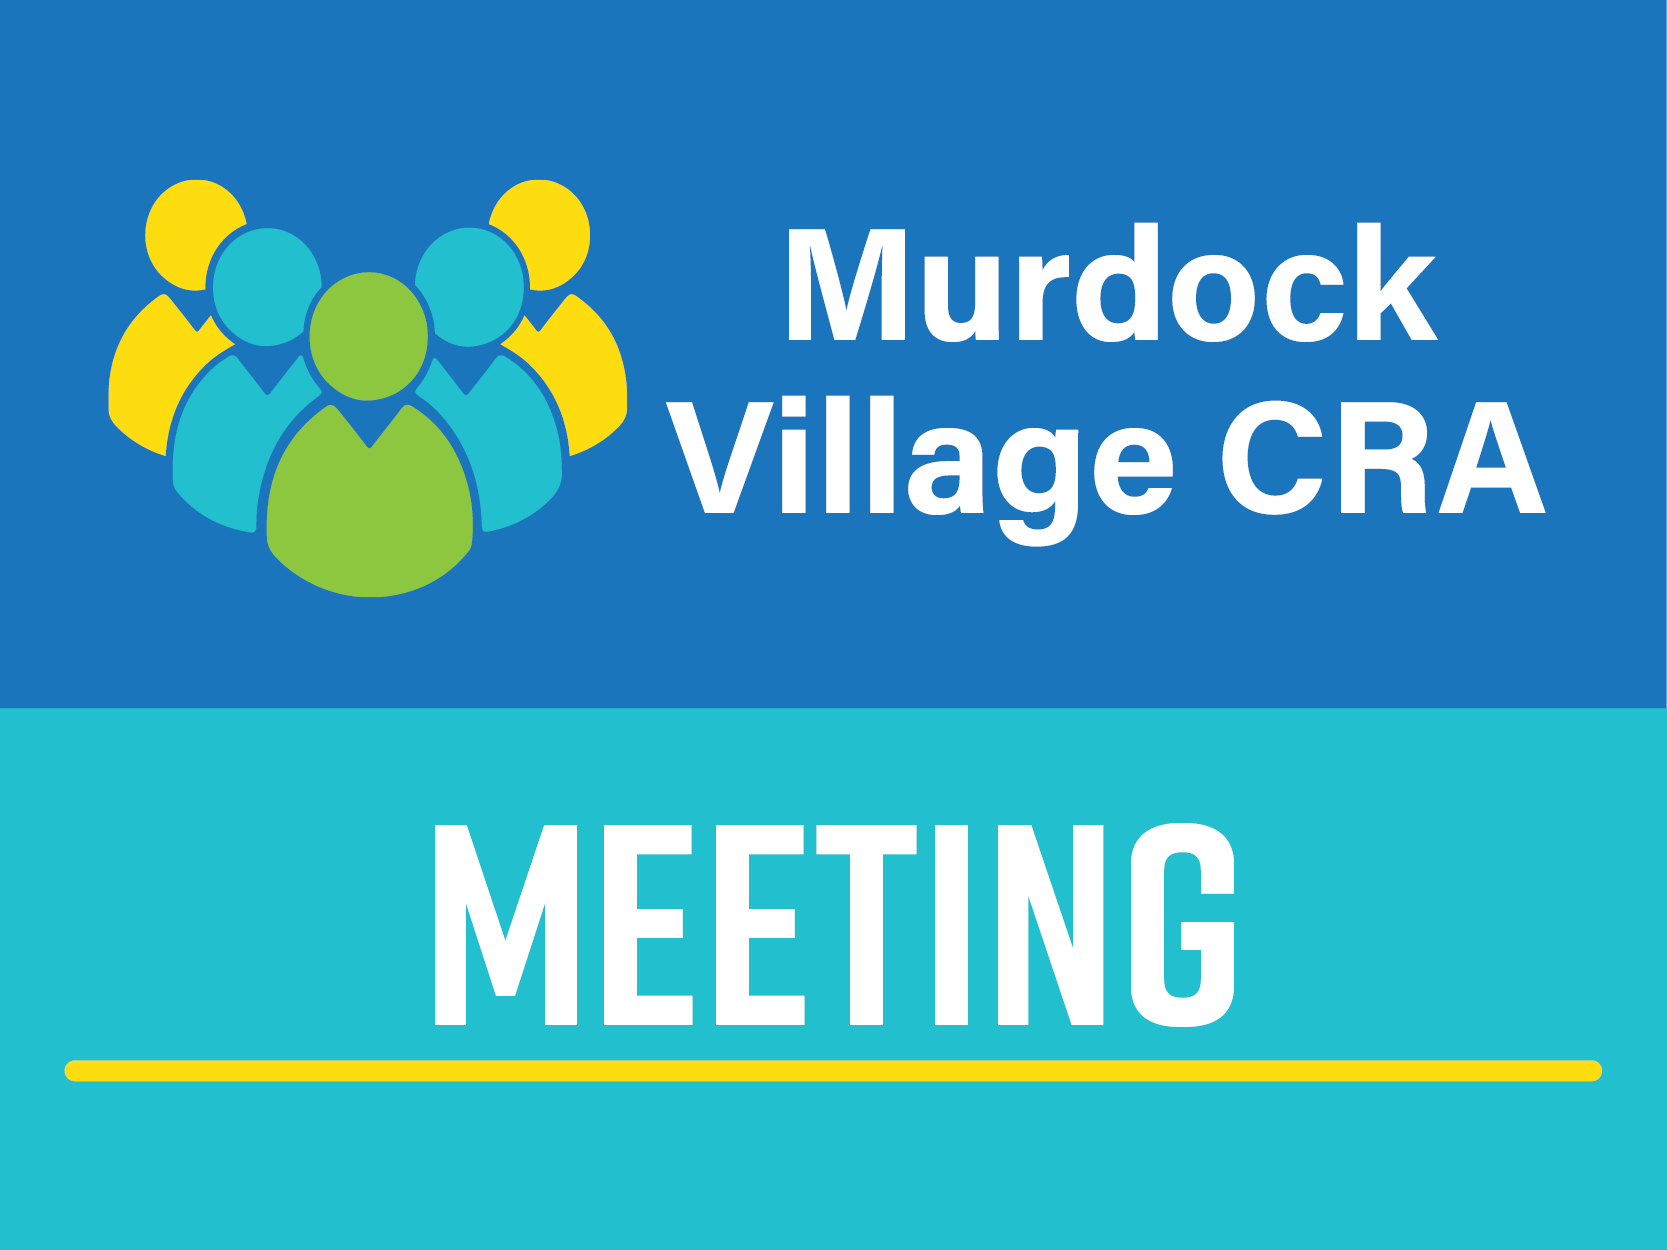 Murdock Village Community Redevelopment Agency Meeting April 27 News Image